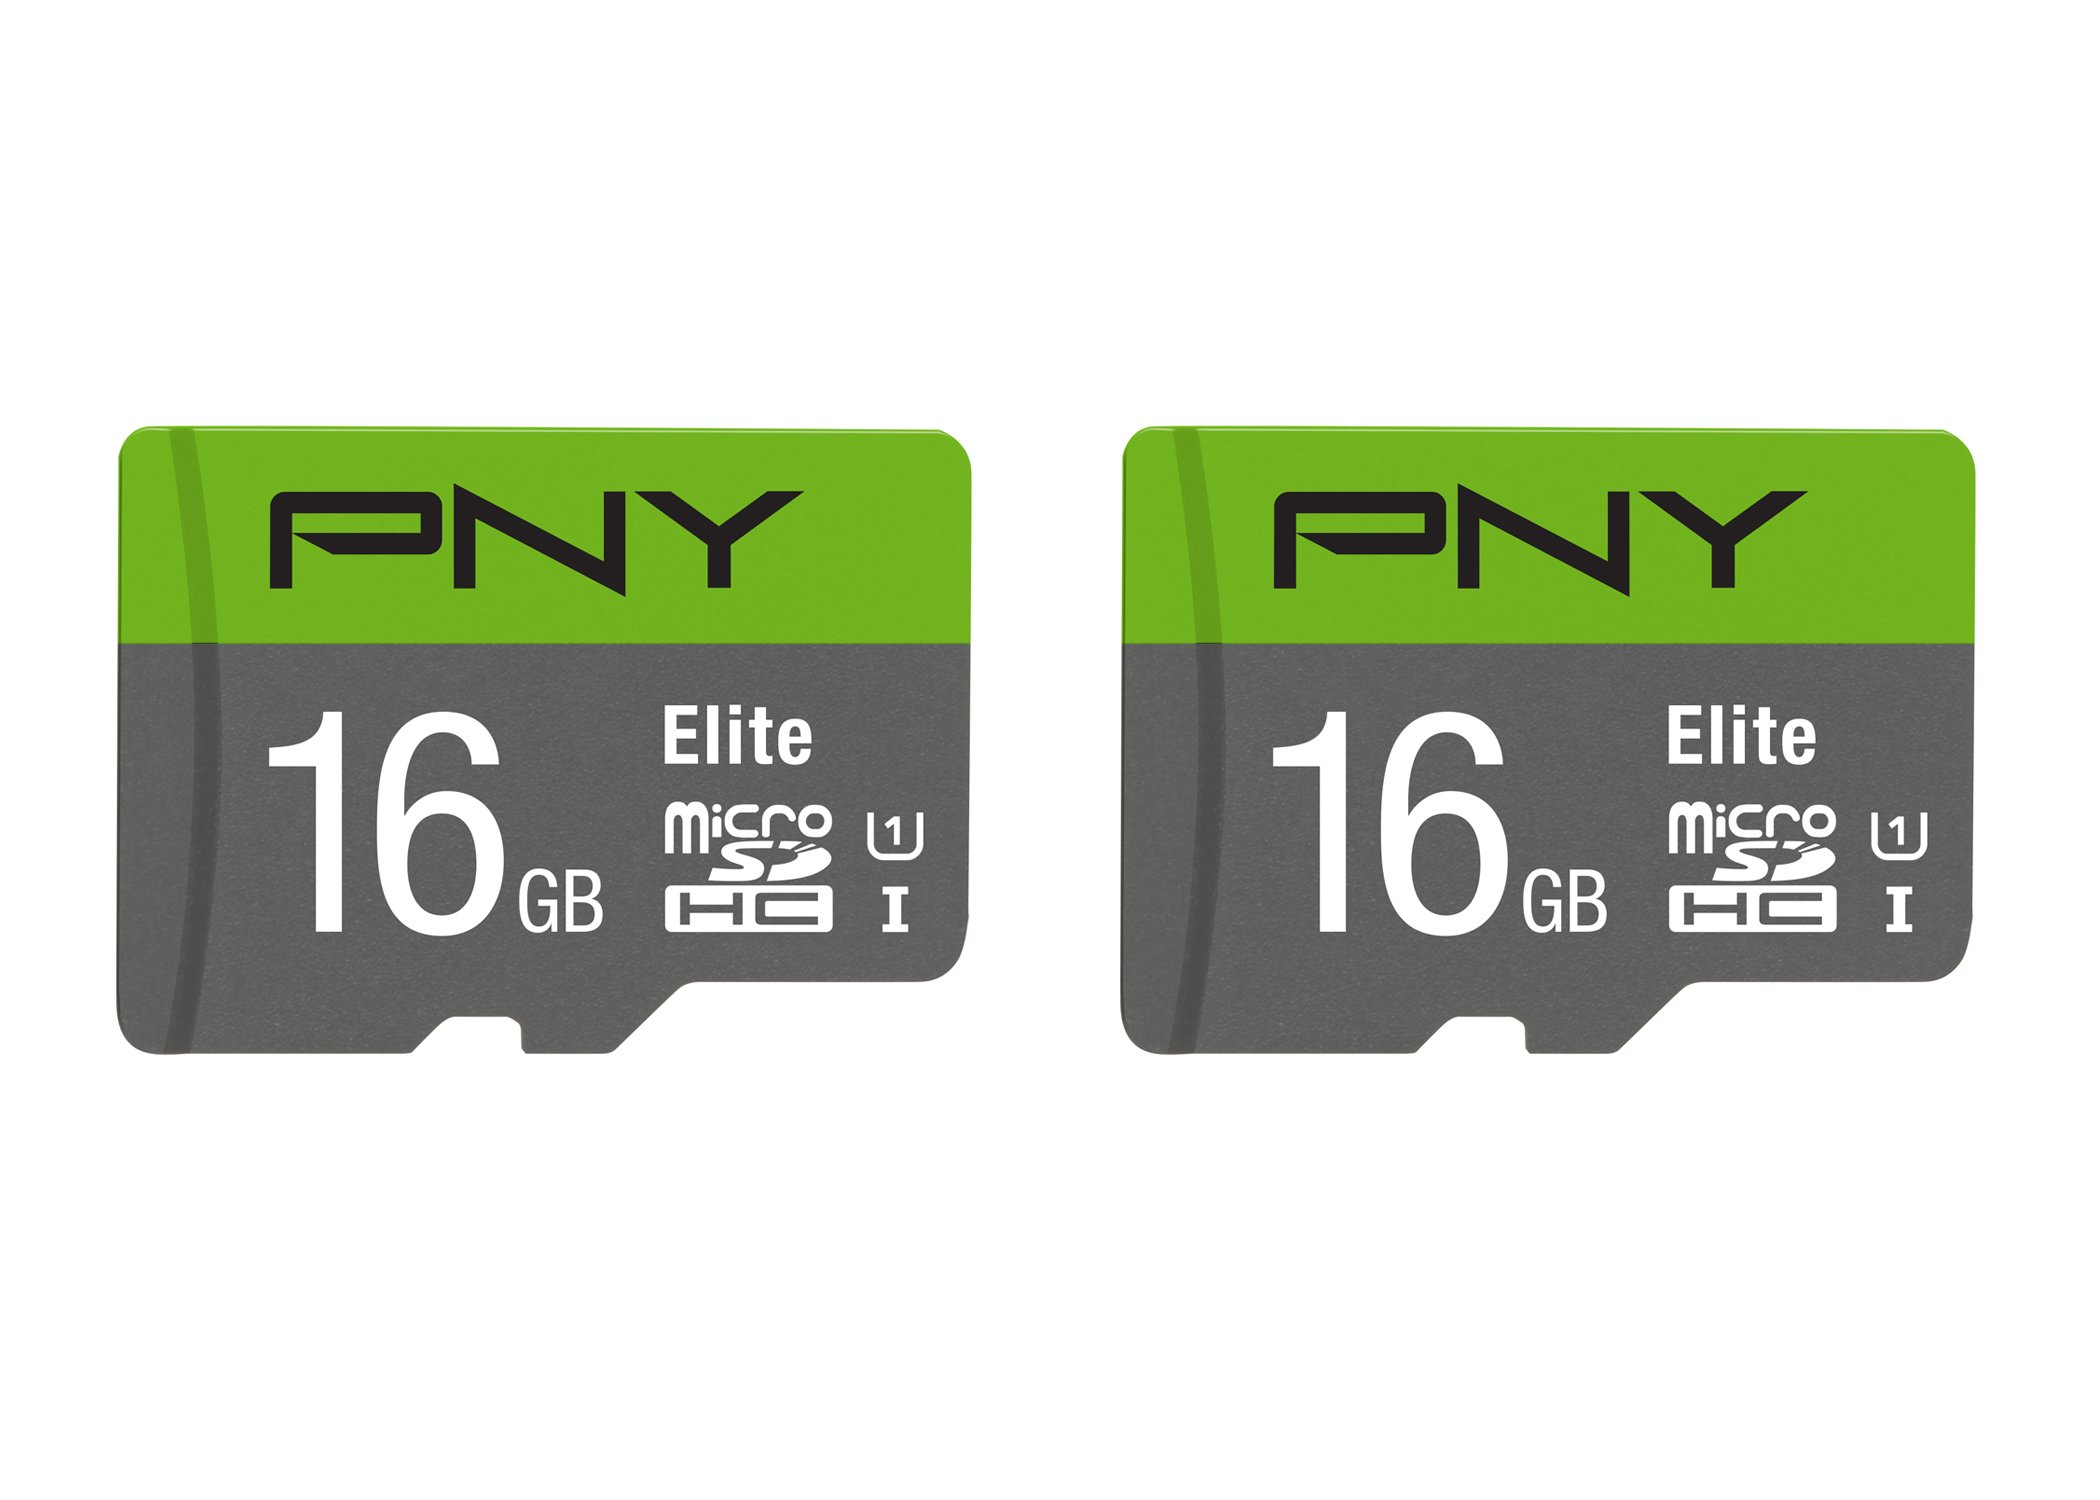 PNY 16GB Elite Class 10 U1 microSDHC Flash Memory Card 2-Pack (P-SDU16GX2U185GW-GE) by PNY